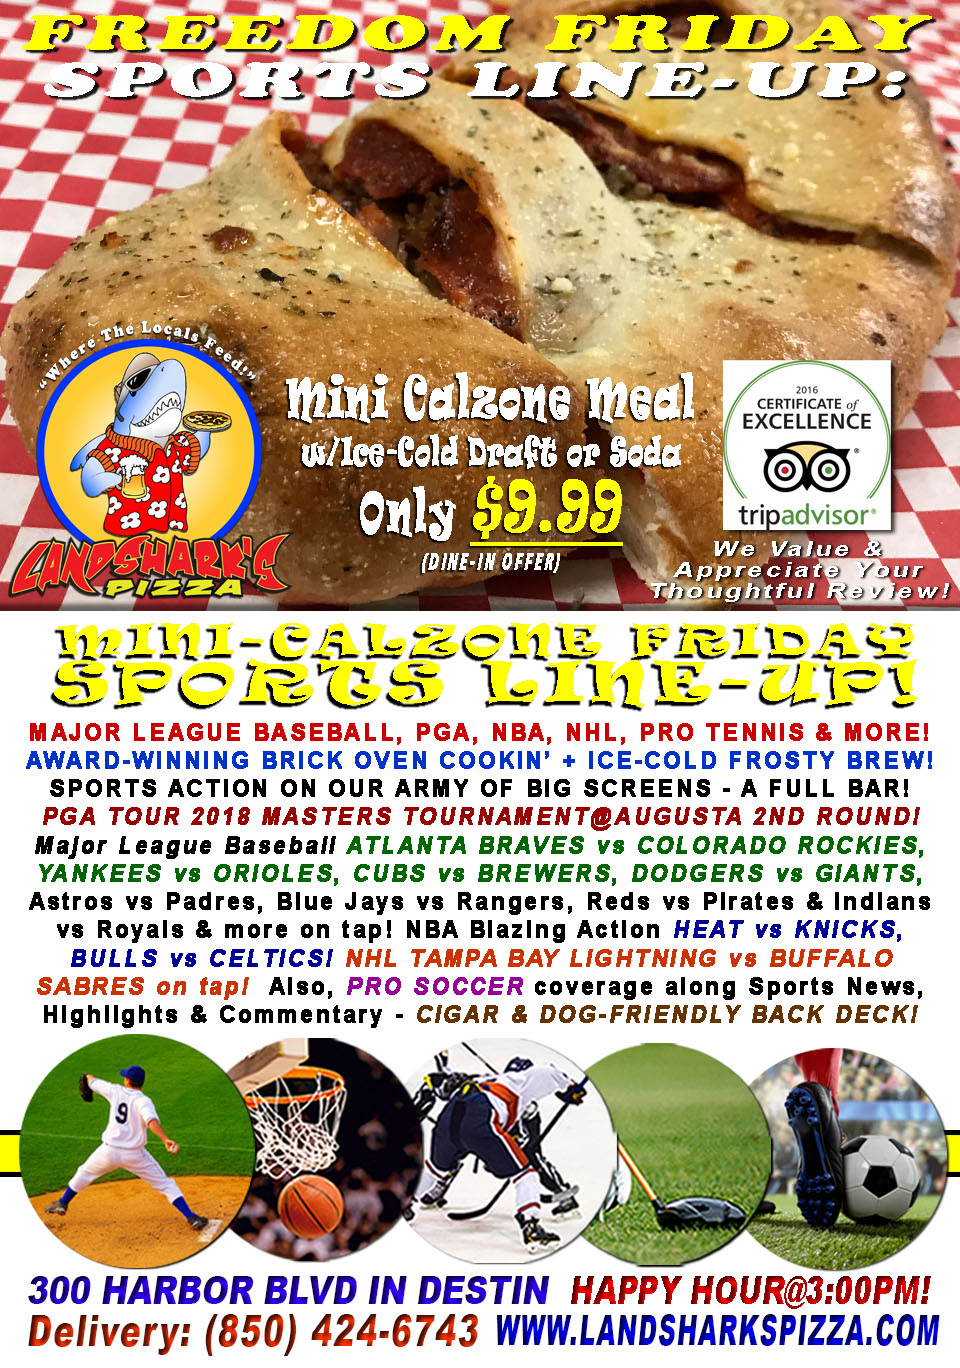 TGI-Freedom Friday THE MASTERS Continues, NHL, NBA & More|2-Topping Calzone & Brew $9.99!